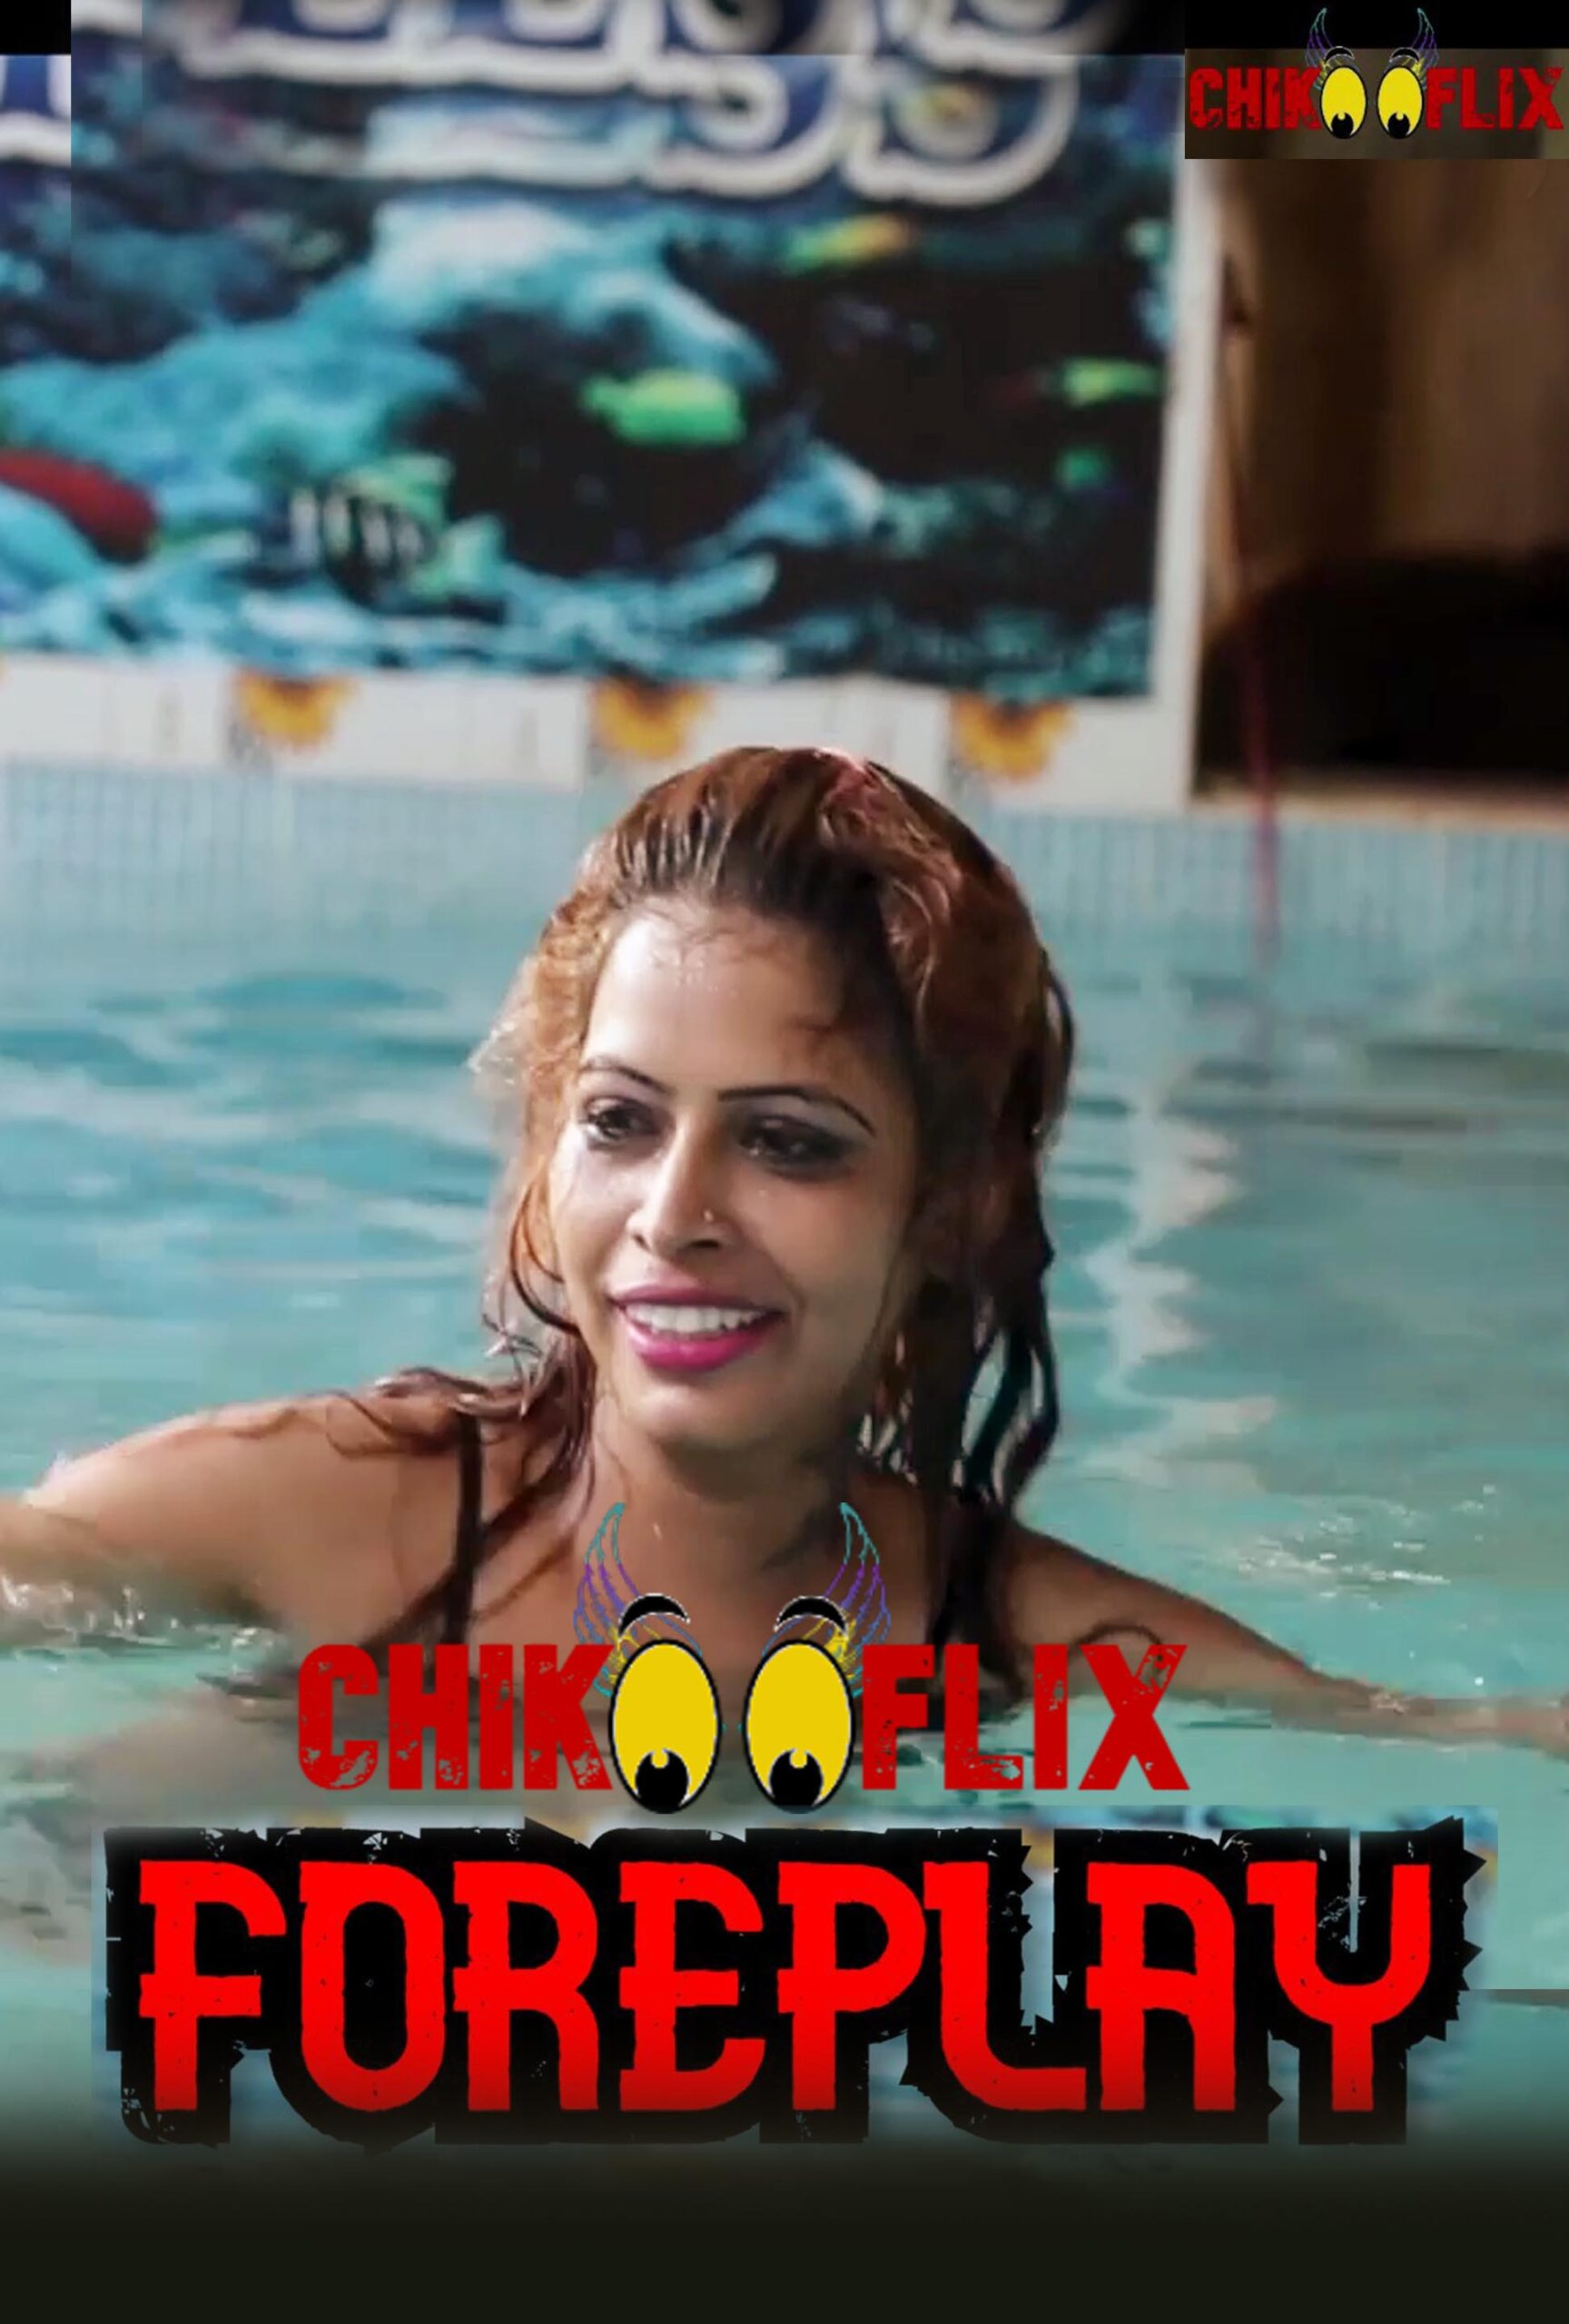 Foreplay 2020 ChikooFlix Originals Hindi Short Film 720p HDRip 200MB Download & Watch Online